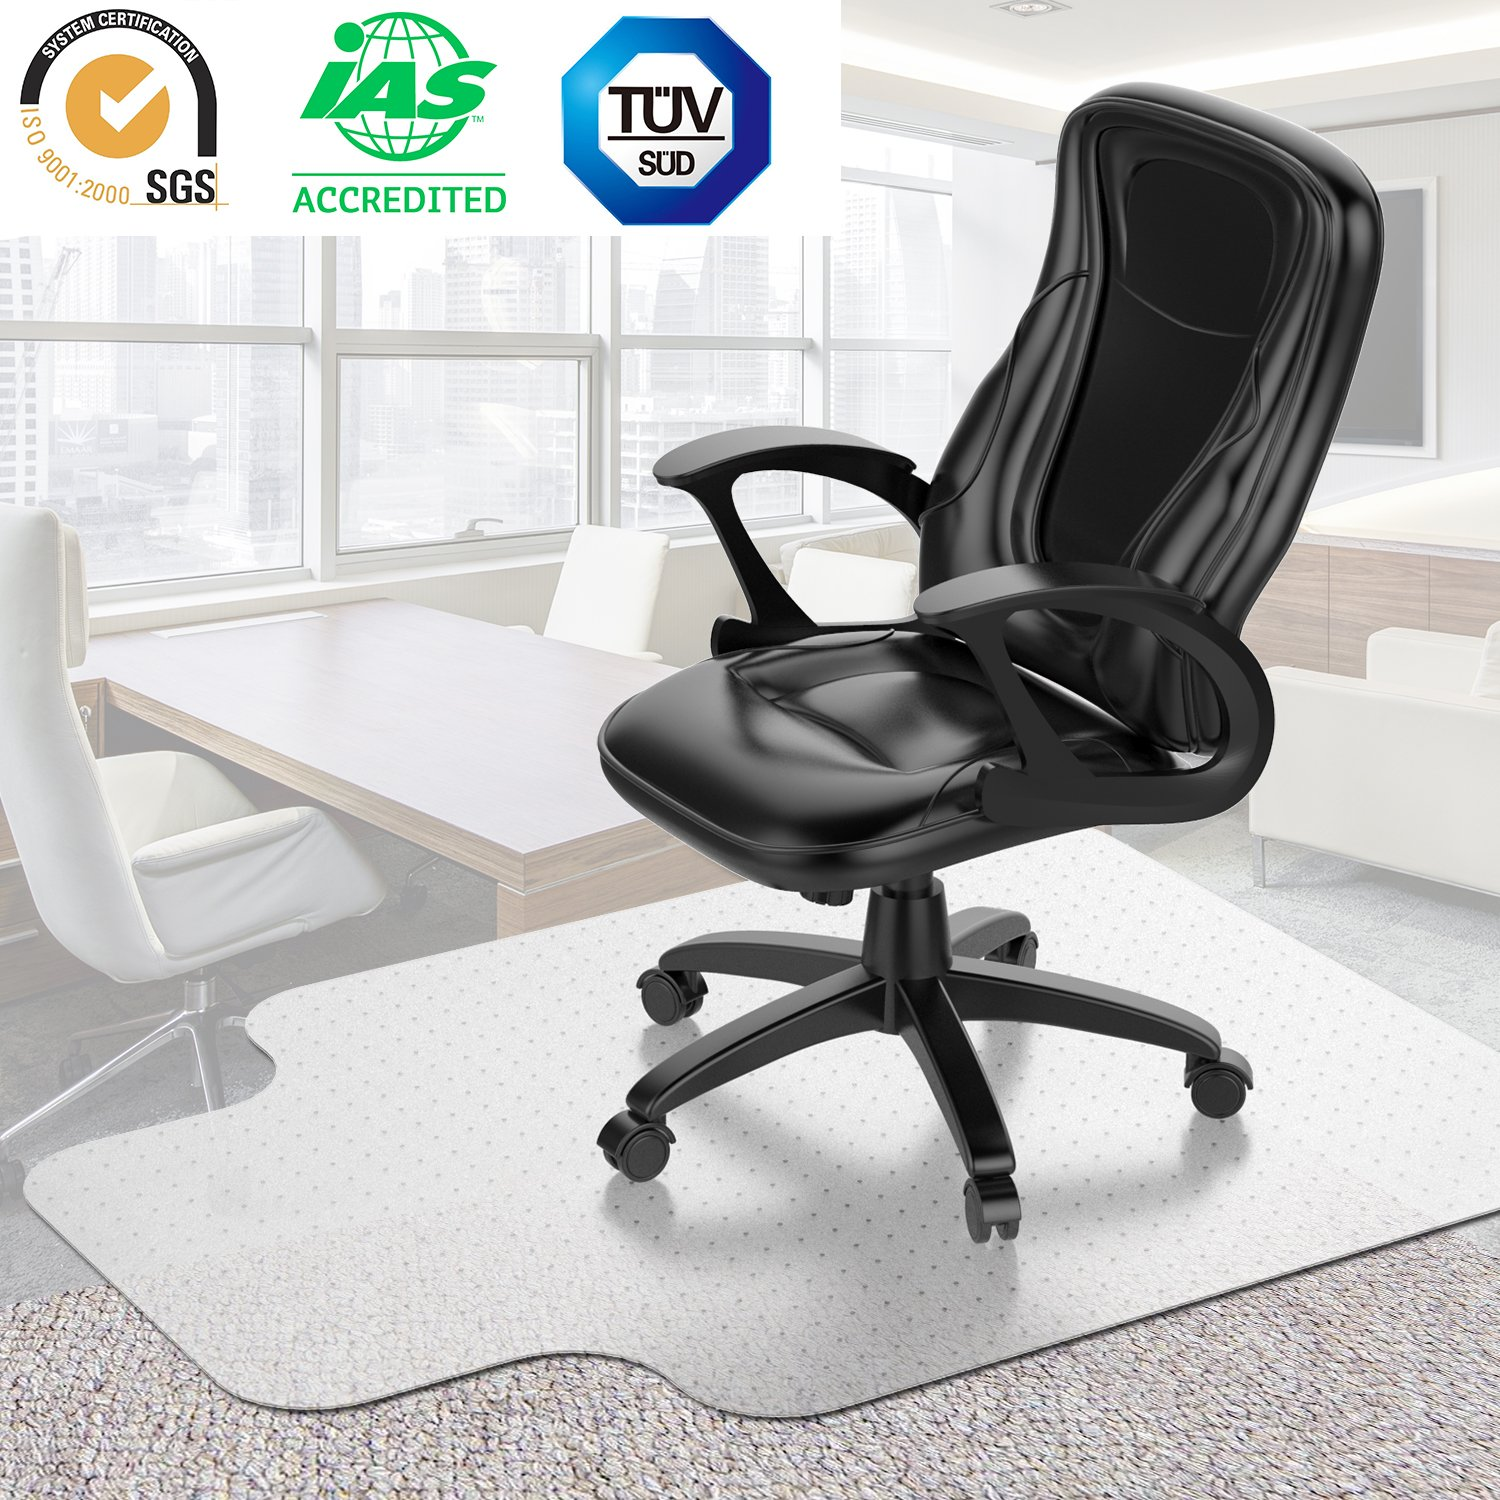 Desk Chair Mat for Carpet -Floor Protector for Low-Pile Carpets ,Non-Slip Bottom, Home, Office, Computer. by kuss Online